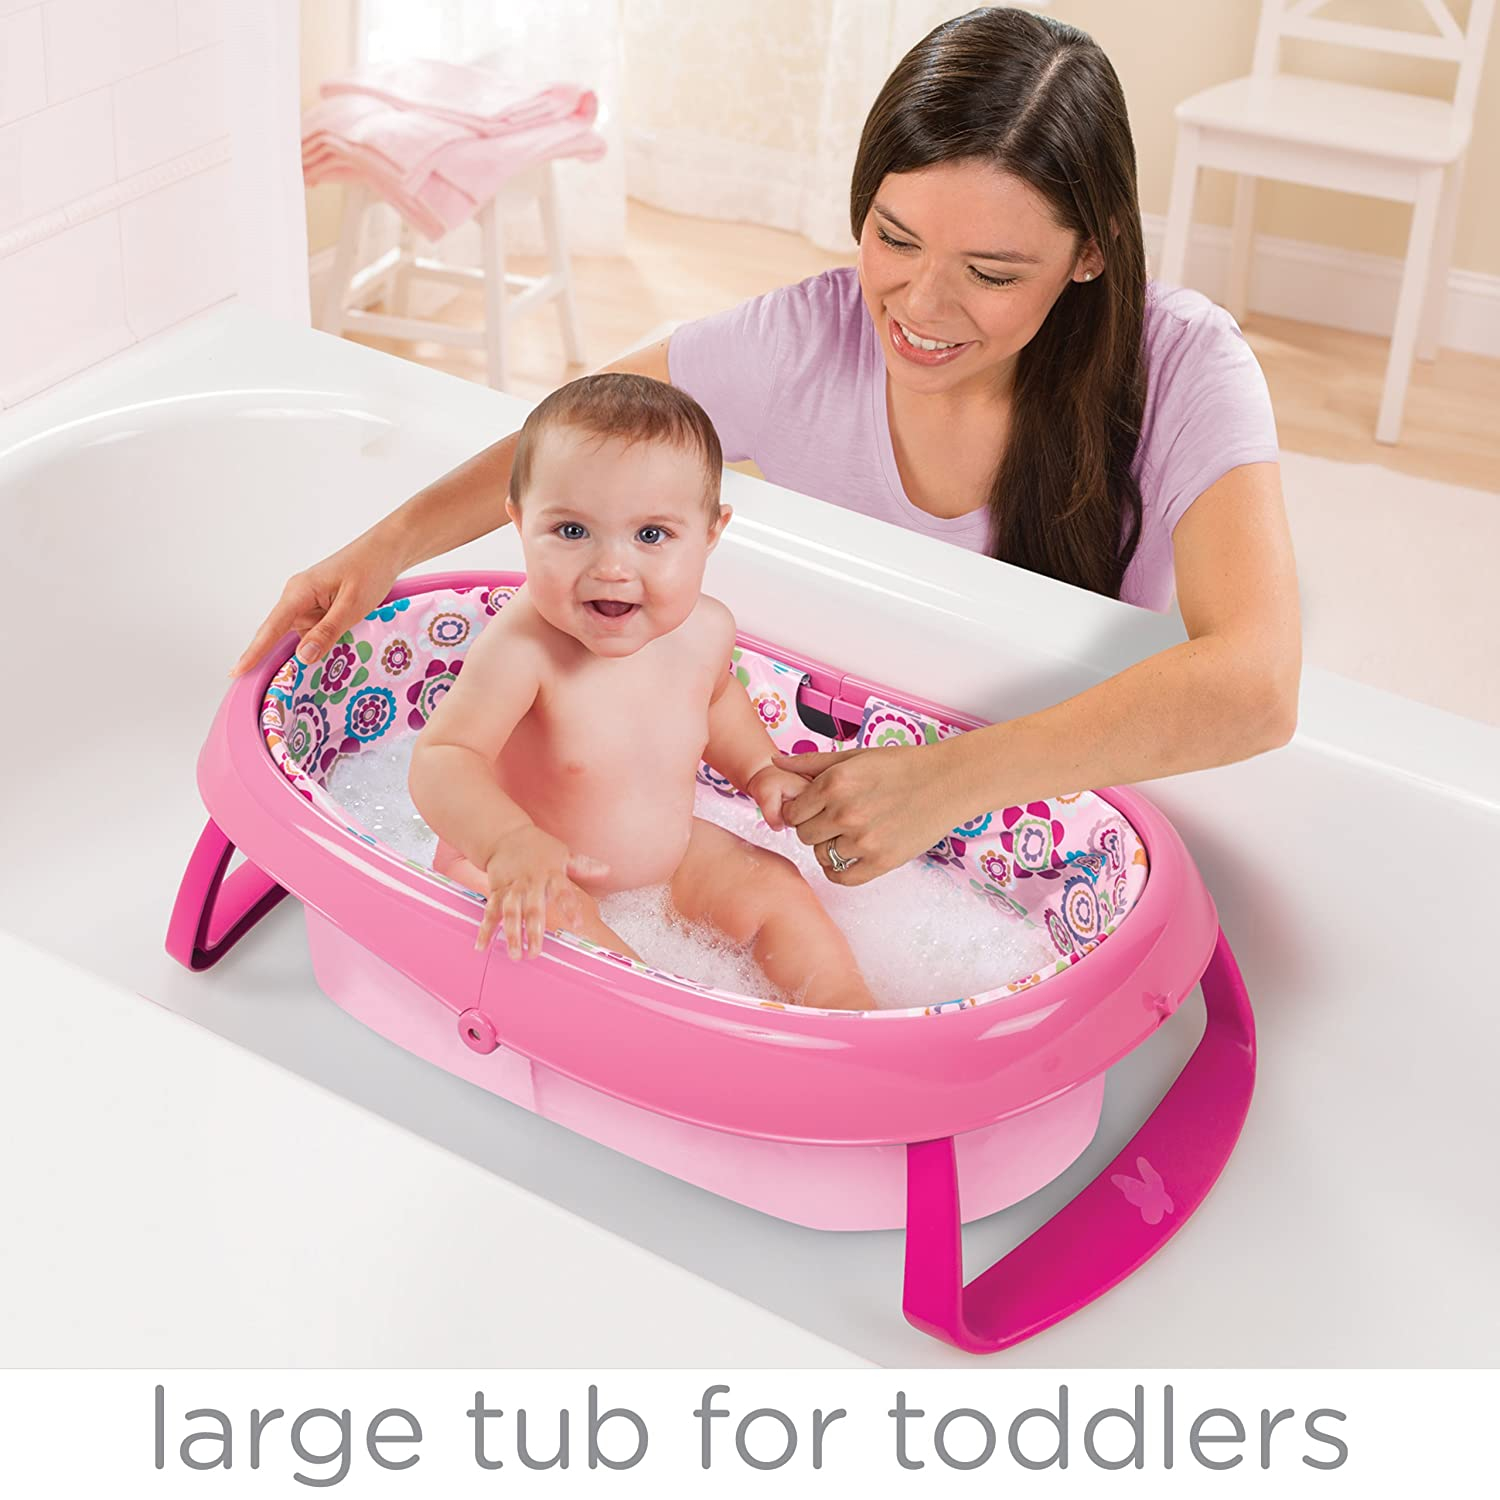 Amazon.com : Summer Infant EasyStore Comfort Tub, Pink : Baby